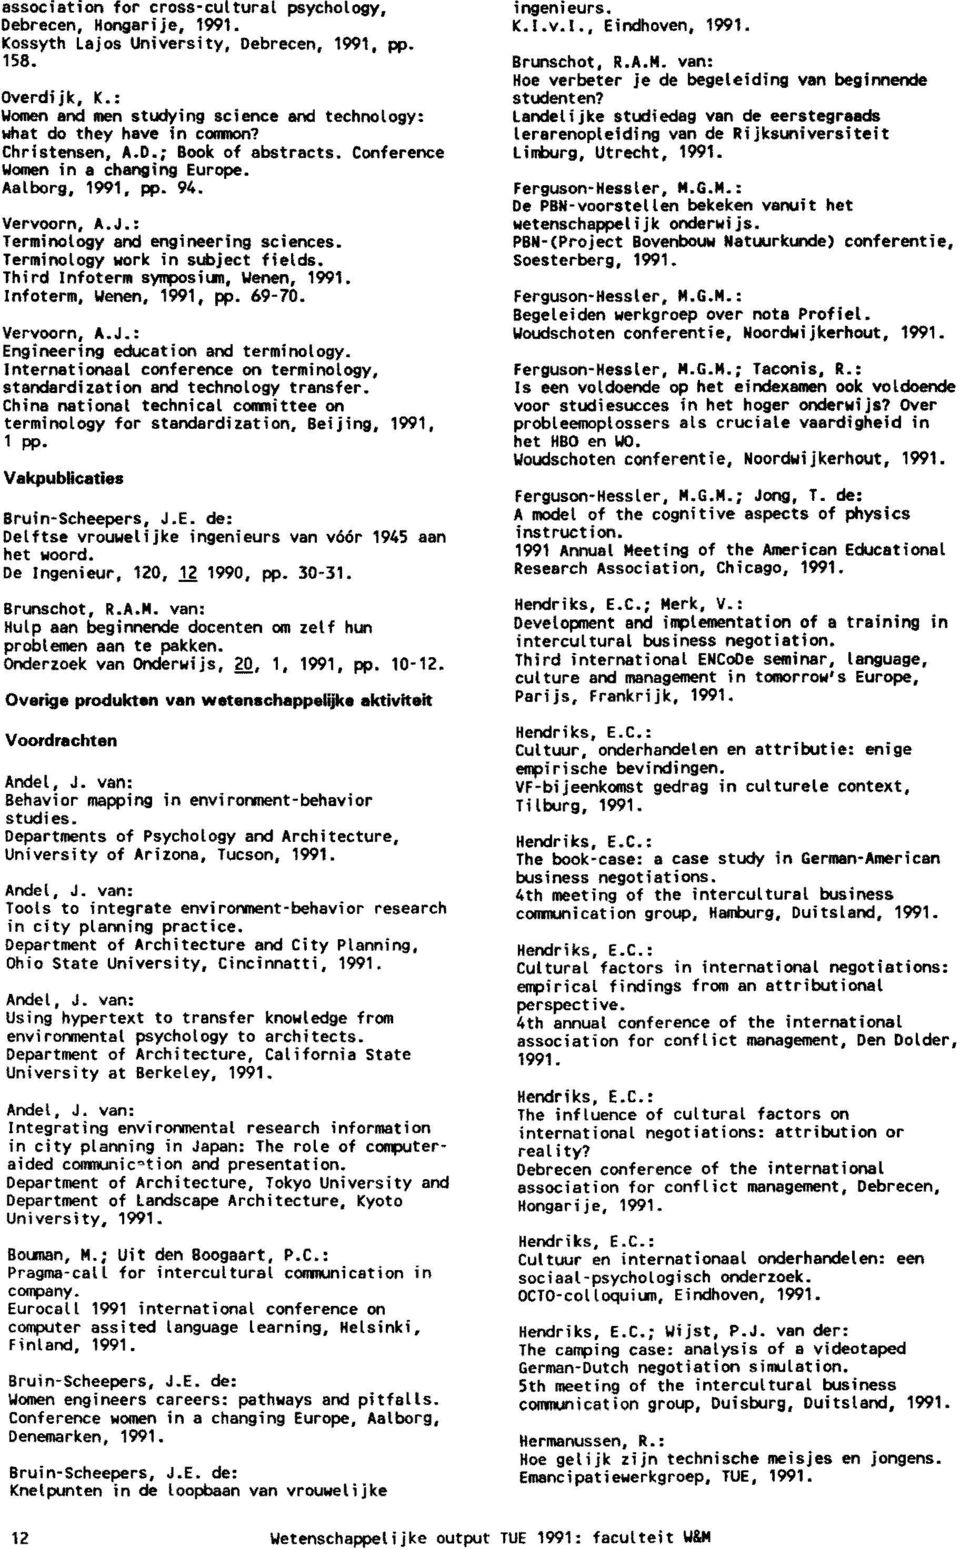 : Terminology and engineering sciences. Terminology work in subject fields. Third Infoterm symposium, Wenen, Infoterm, Wenen, 1991, pp. 69-70. Vervoorn, A.J.: Engineering education and terminology.